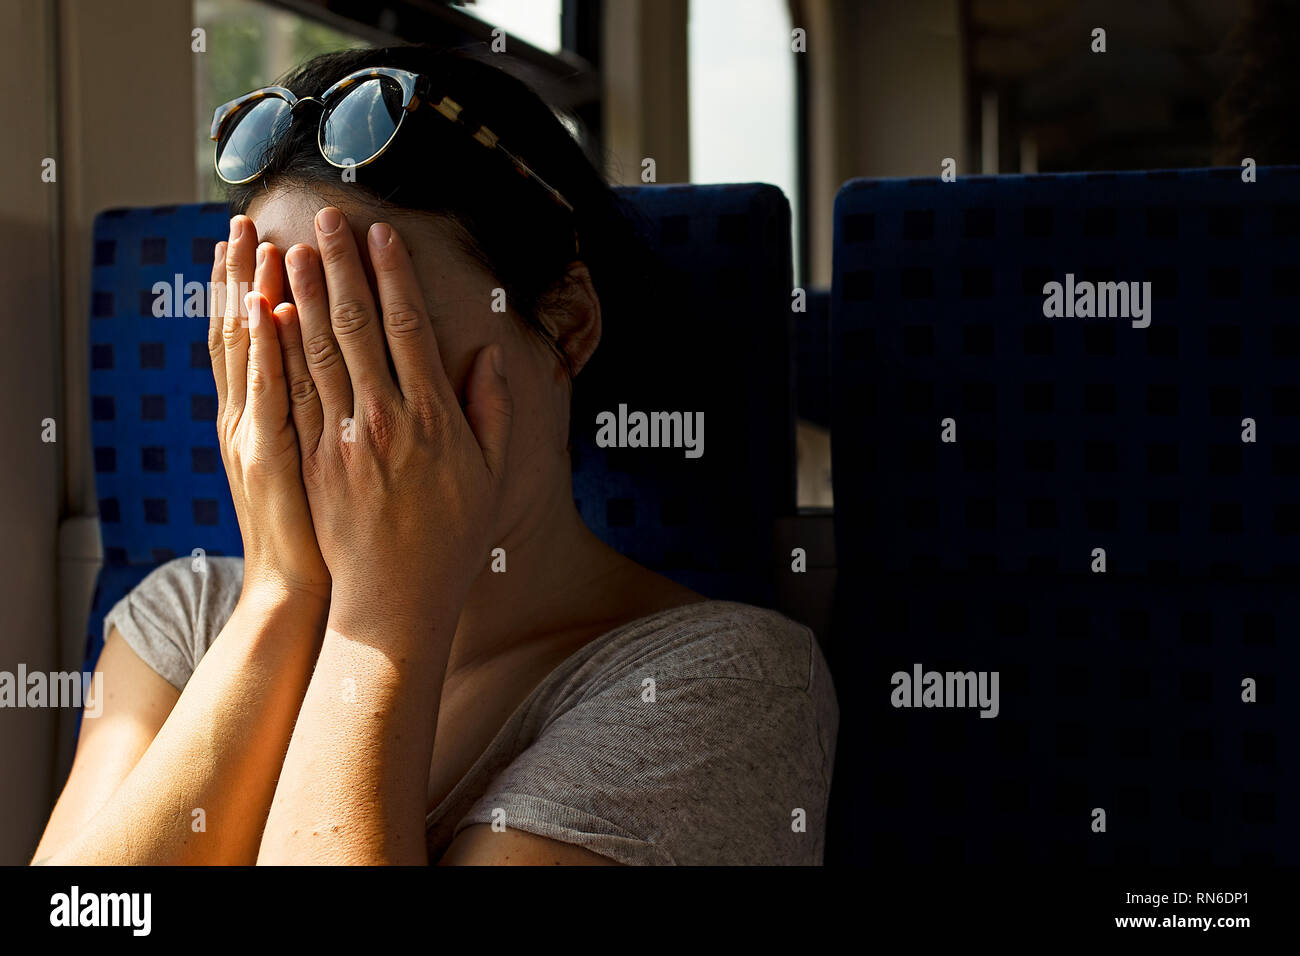 A lone white female hides her face with her hands on a train. - Stock Image